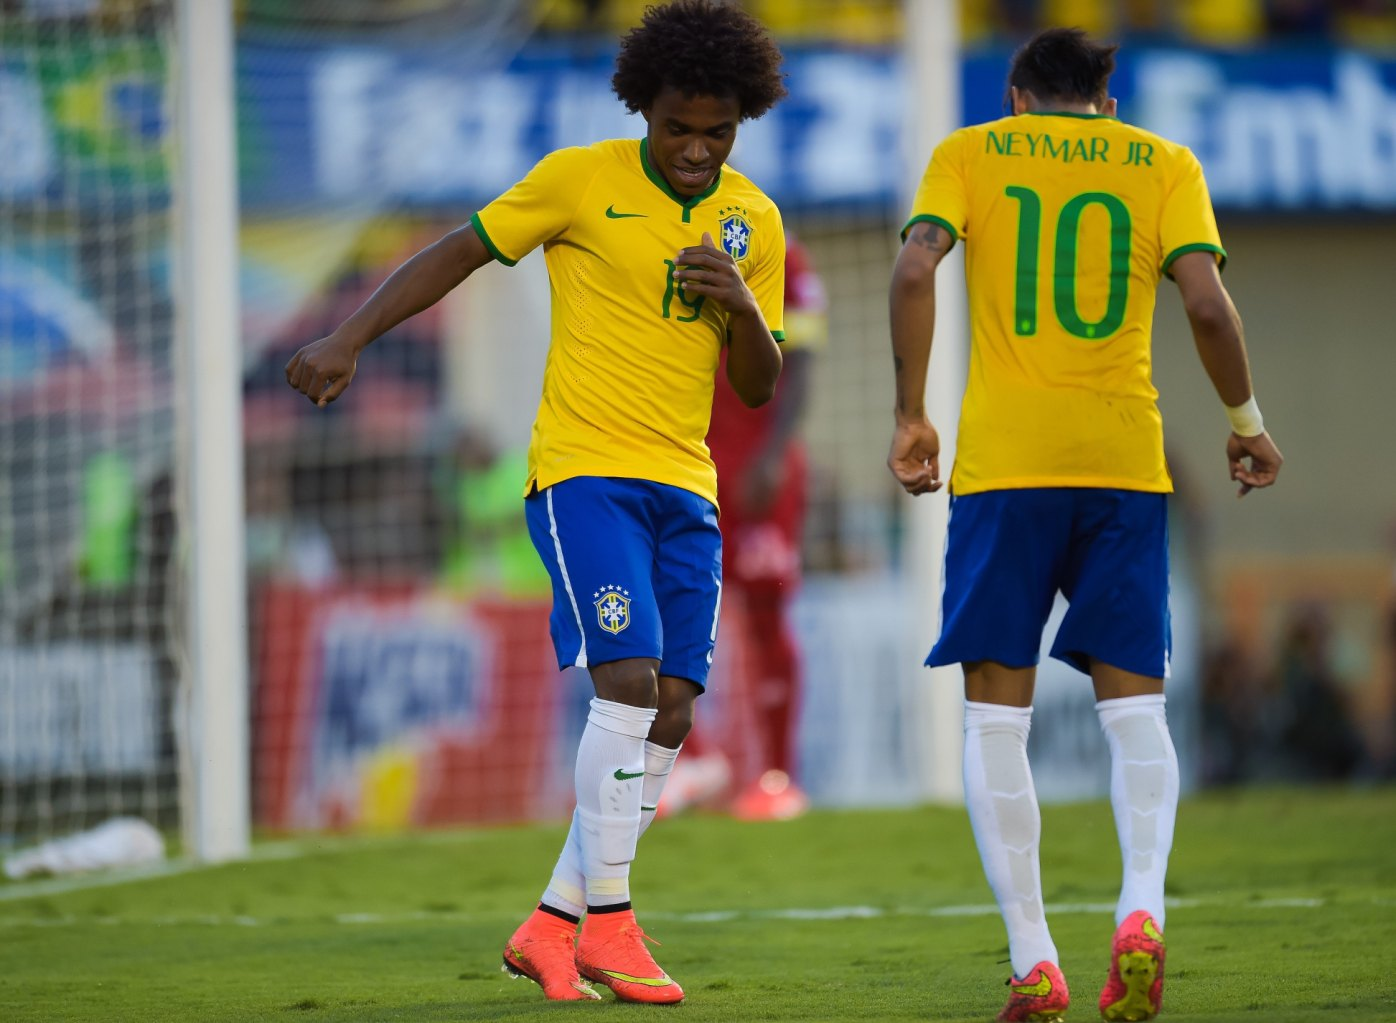 Willian and Neymar Jr dancing in Brazil